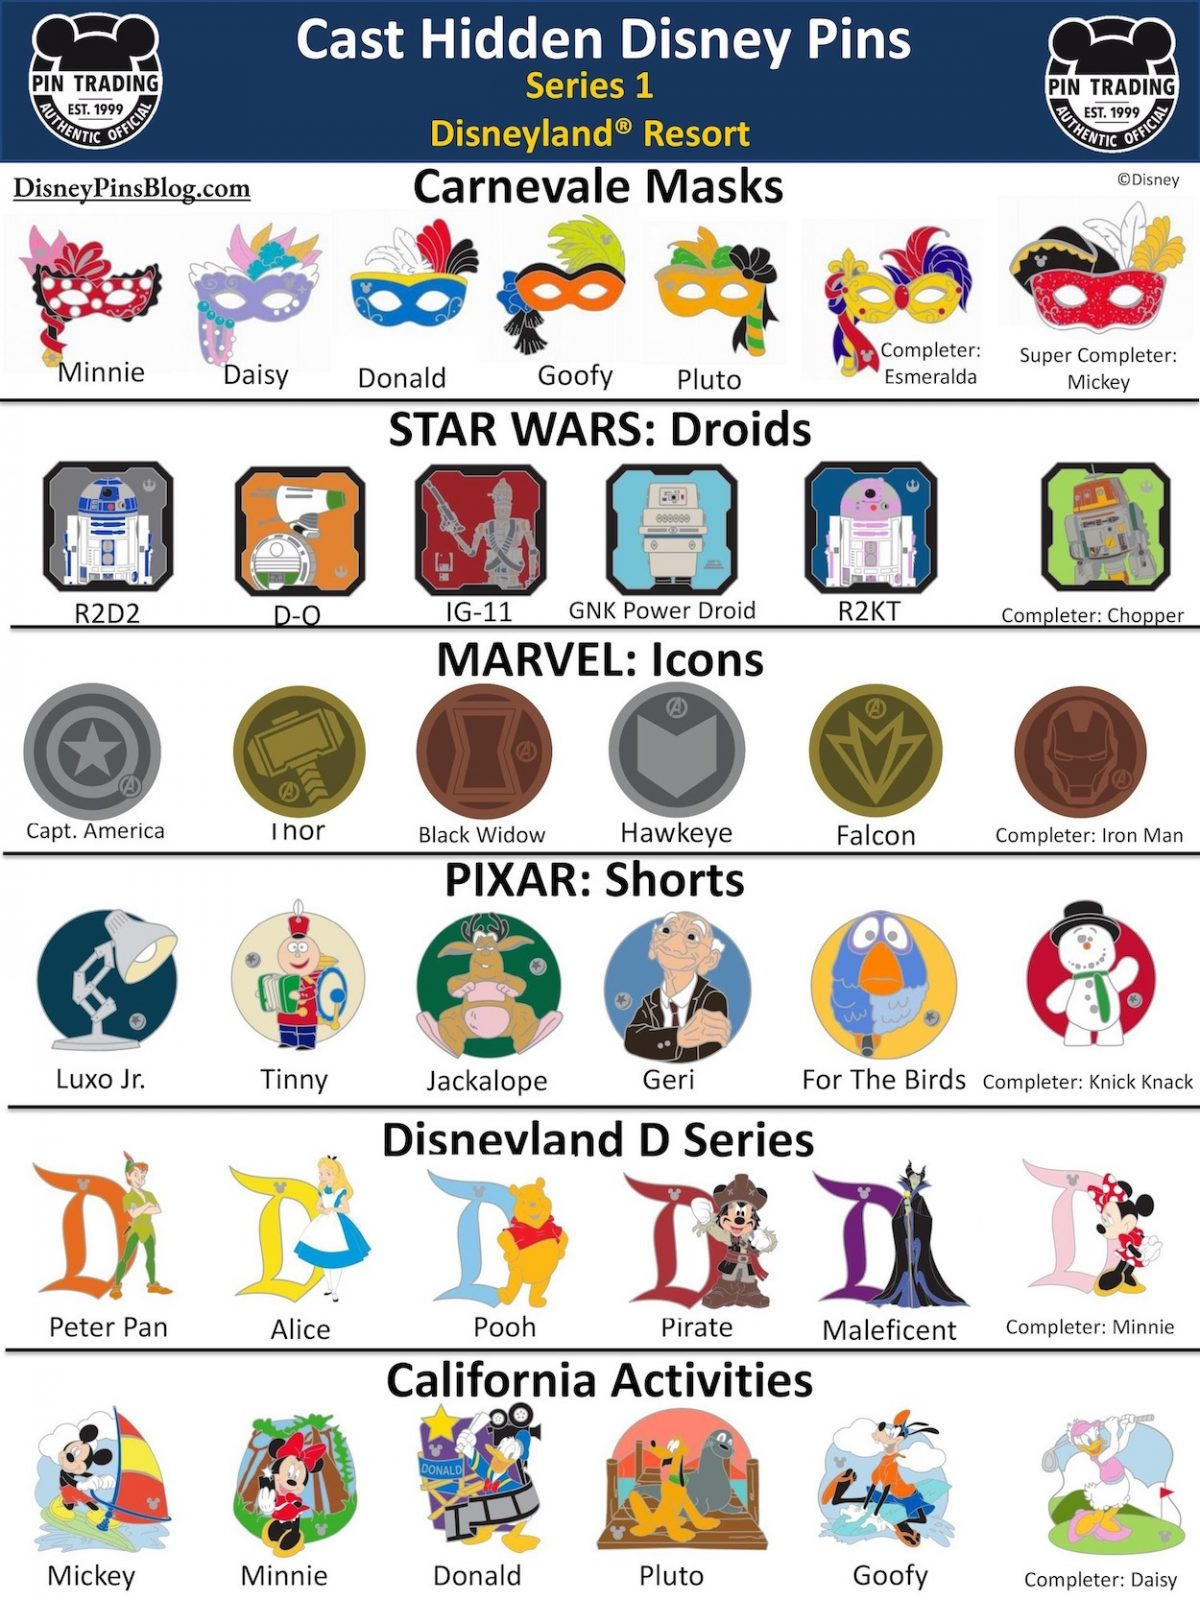 Disneyland Cast Hidden Disney Pins 2020 Series 1